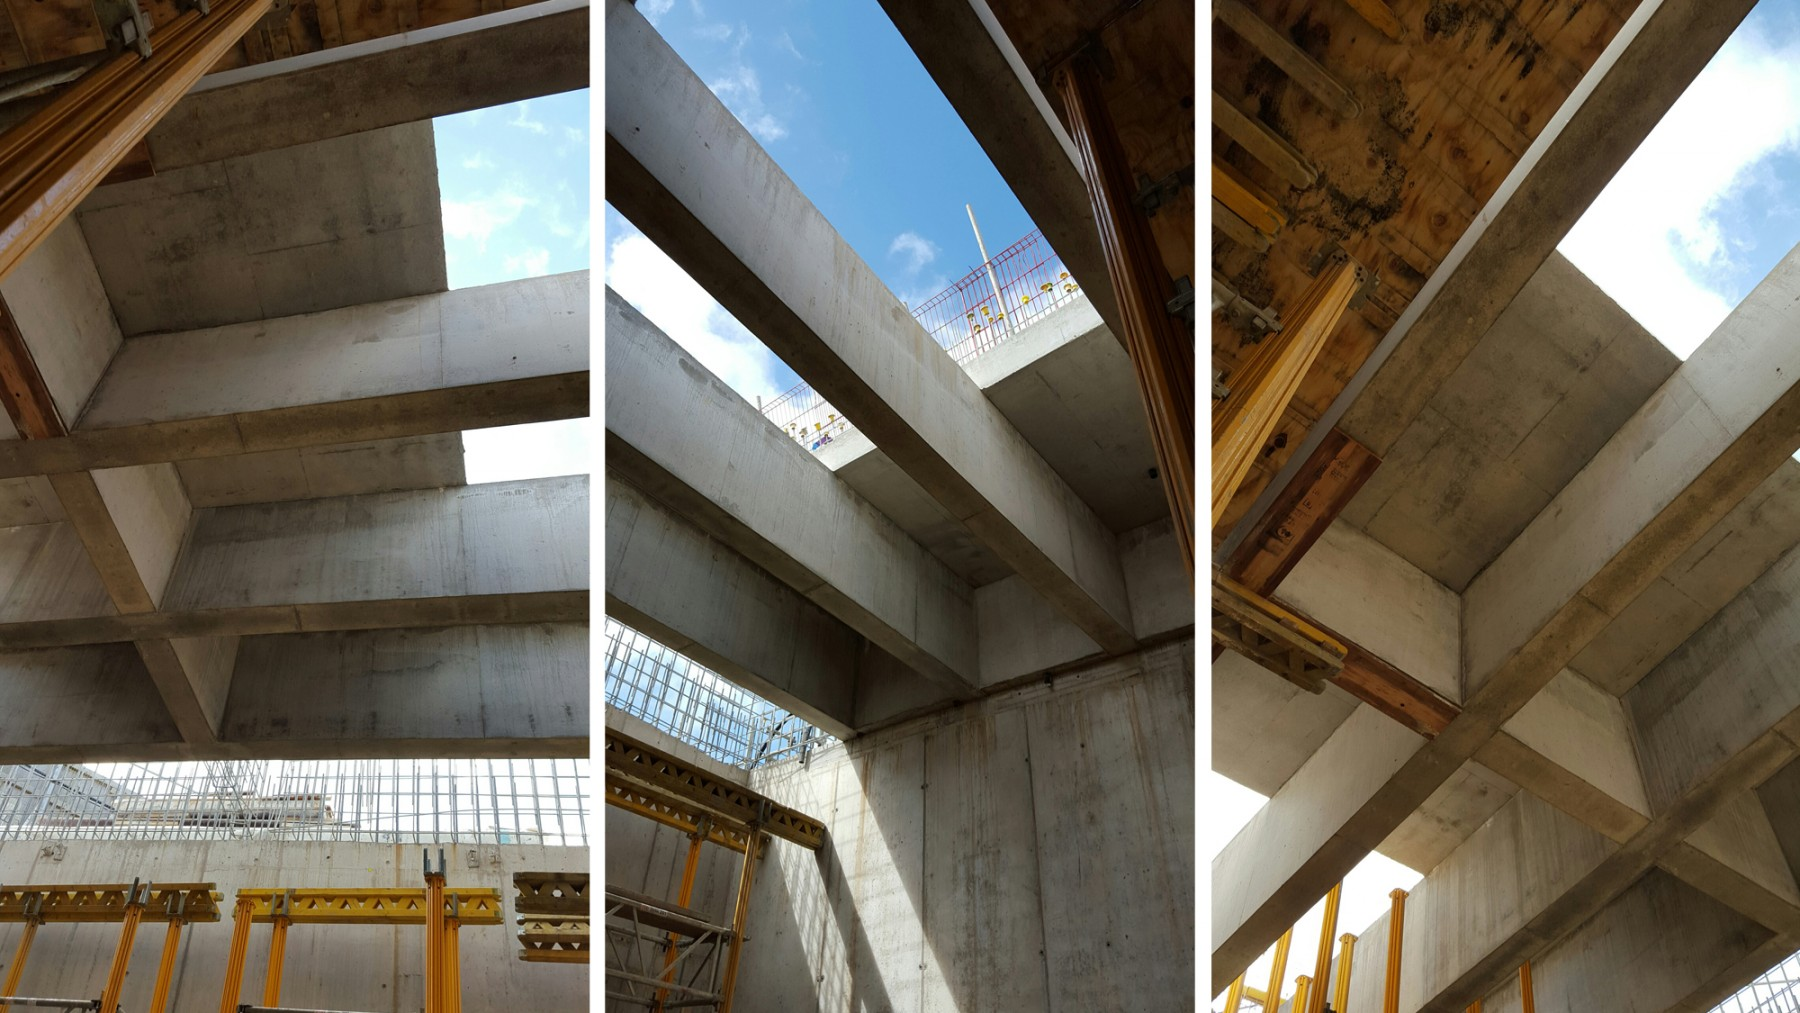 Jamie-fobert-architecs-in-situ-concrete-roof-gallery-museum-tate-st-ives-construction